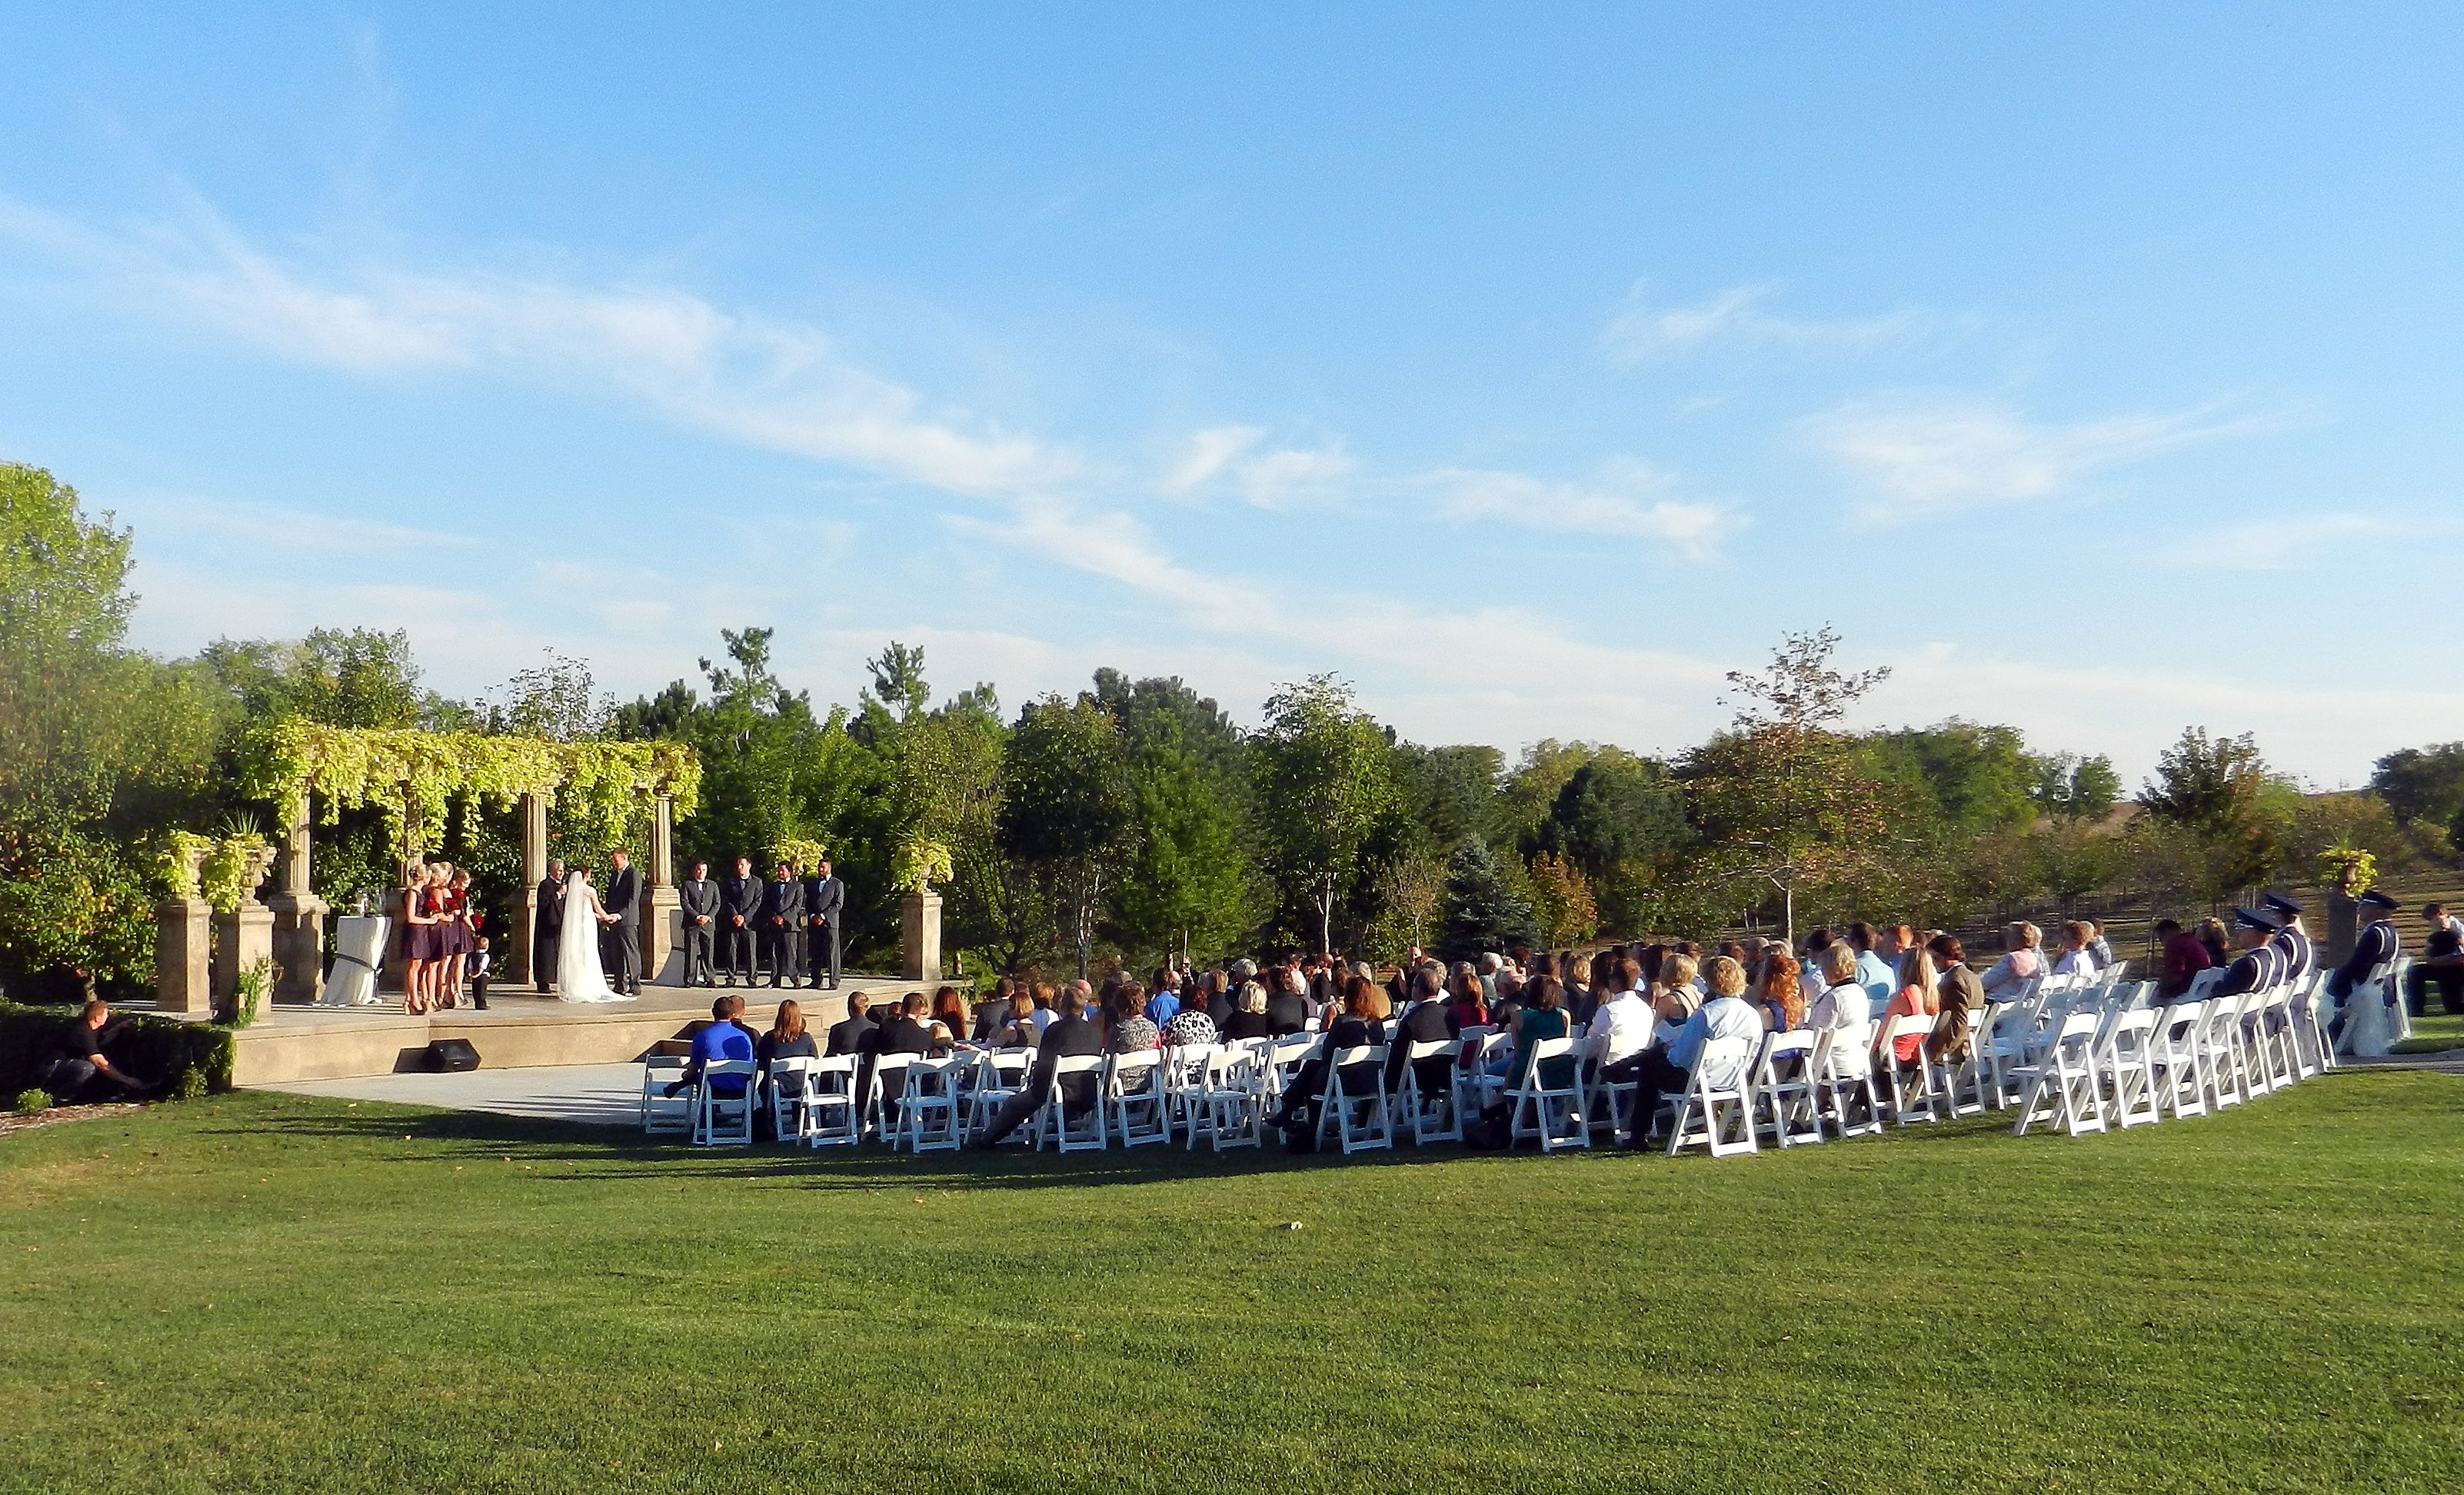 Nebraska outdoor wedding paradise!!